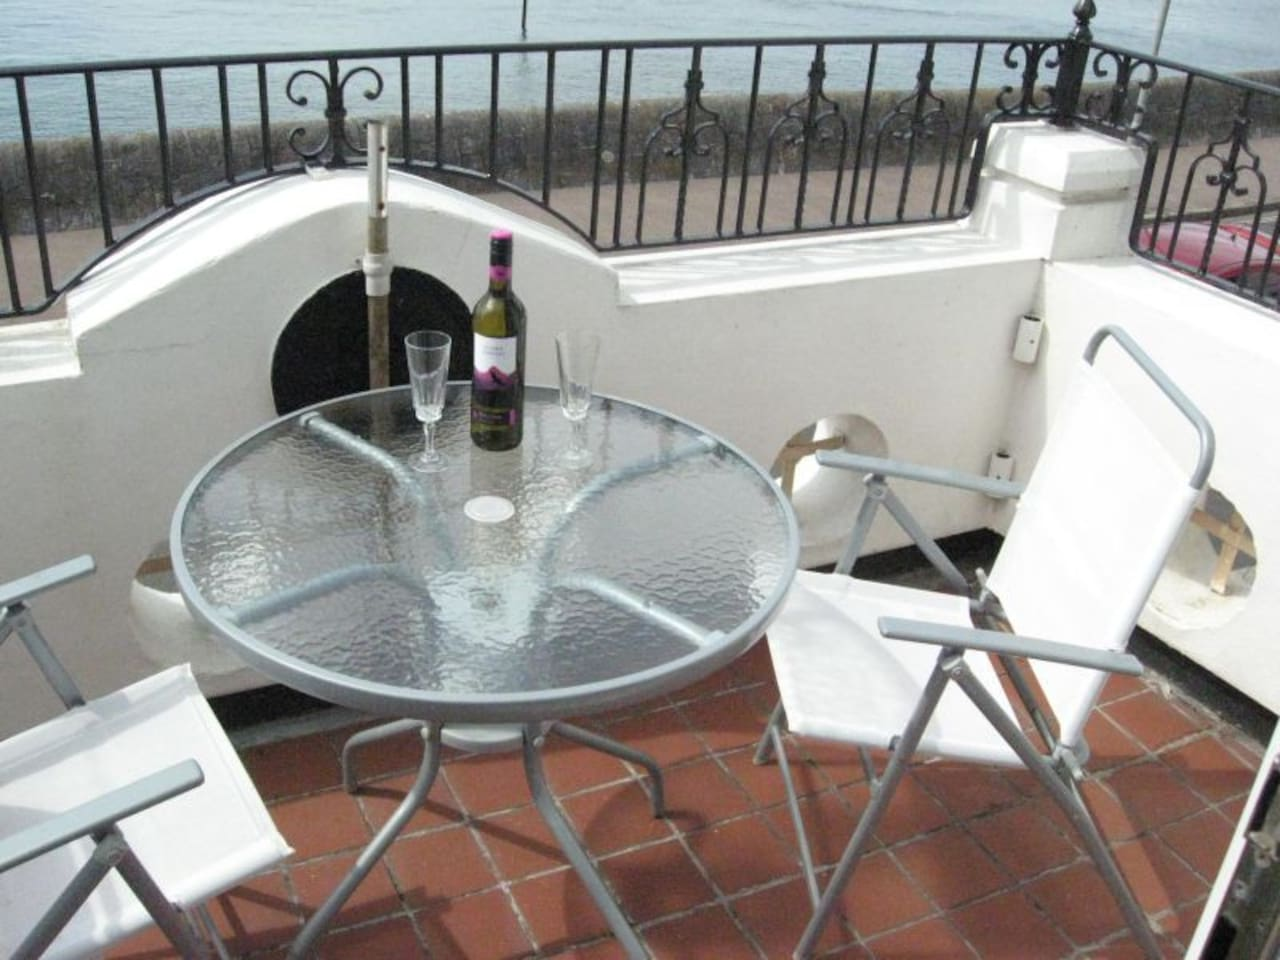 Relax On The South-Facing Sun Balcony. Take A Shower, Pop A Cork, Sit Back and Devour!